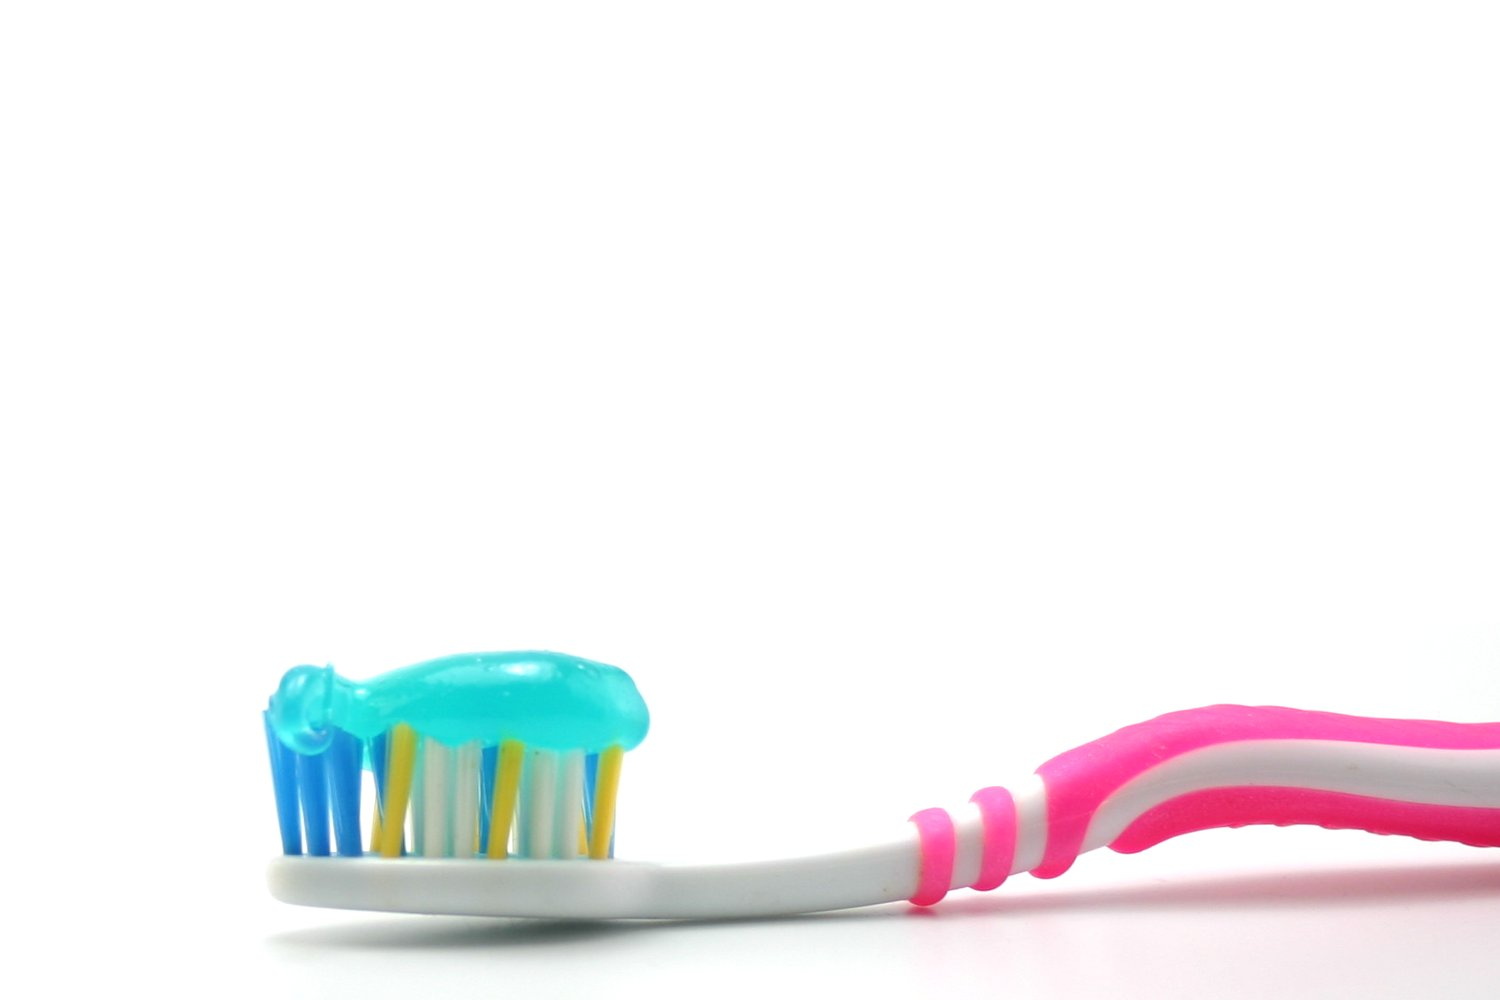 Dental brush and paste, Bathroom, Toilet, Mouth, Oral, HQ Photo